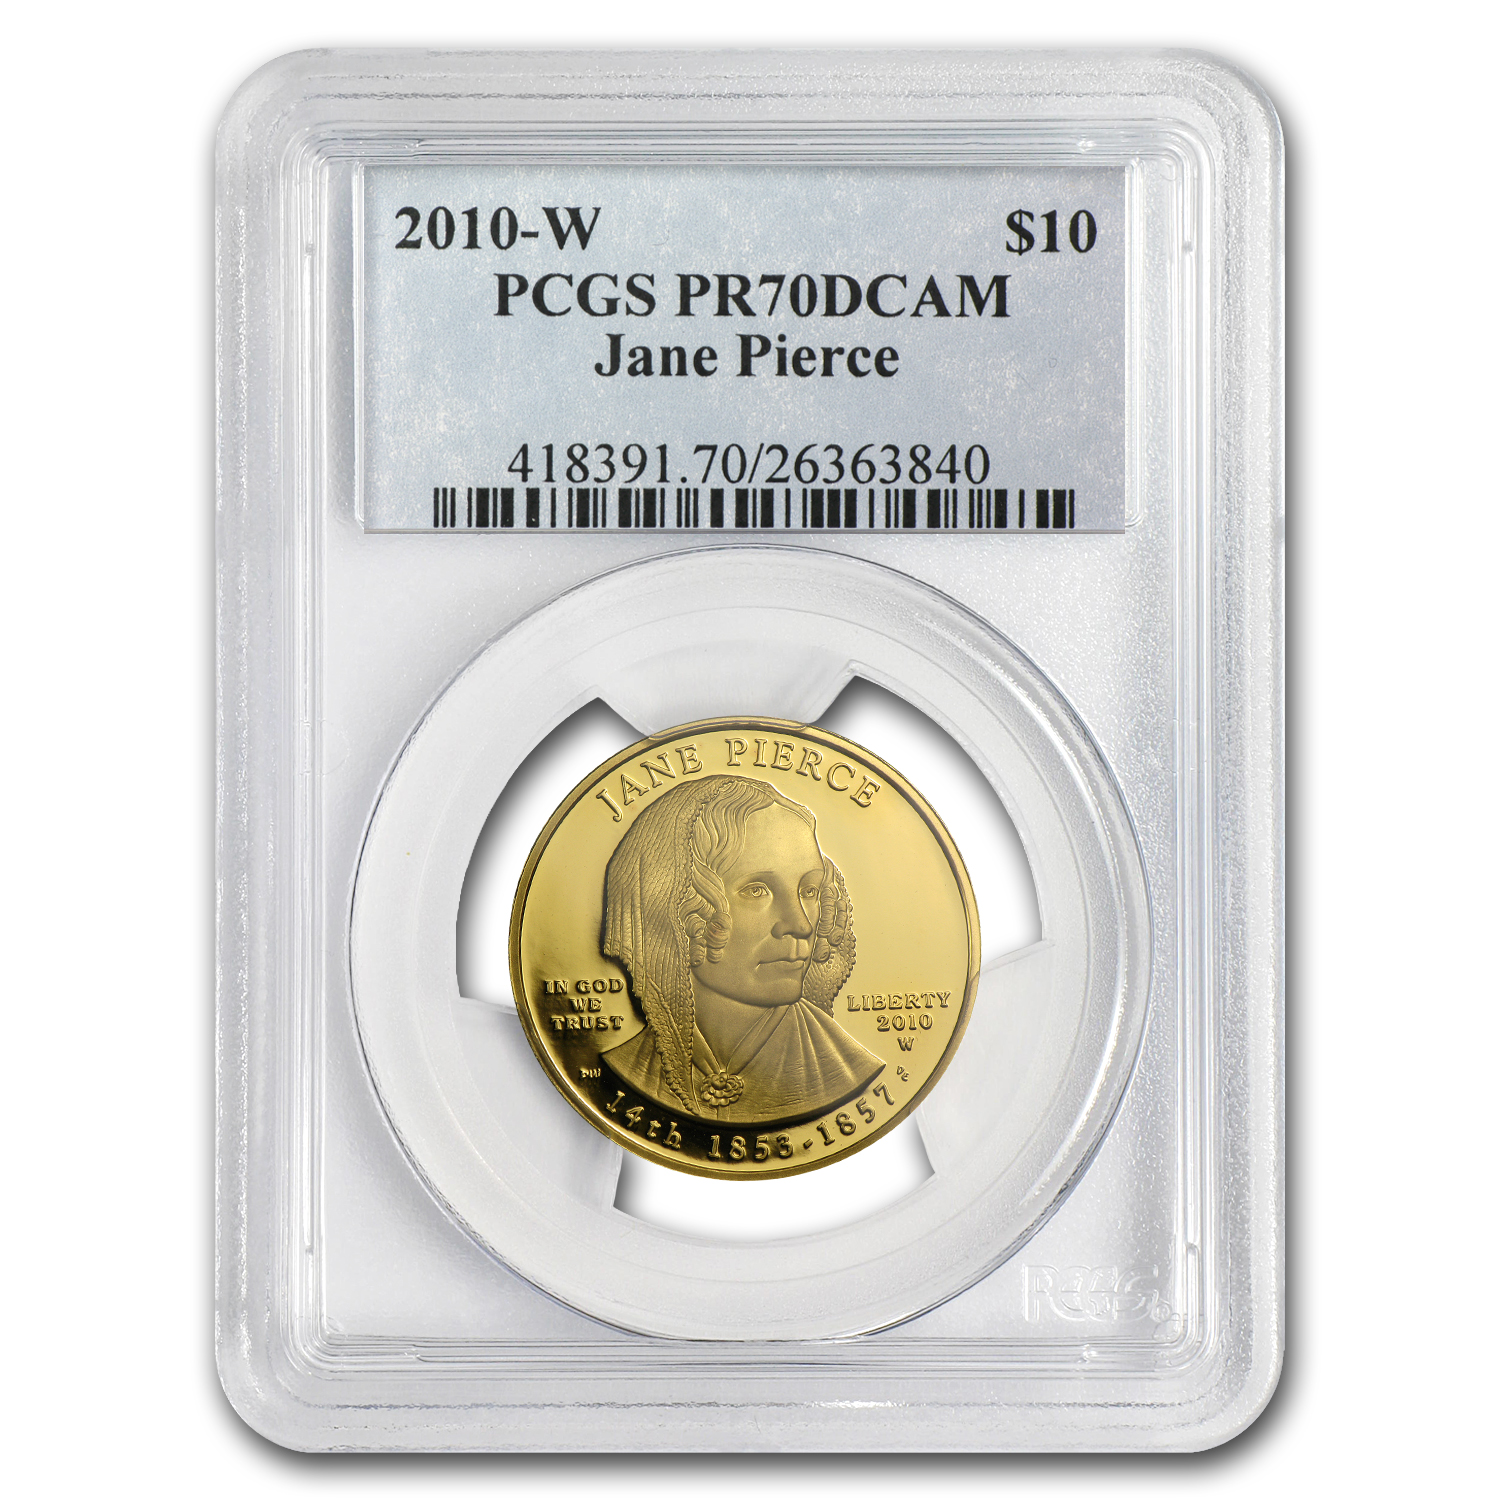 2010-W 1/2 oz Proof Gold Jane Pierce PR-70 PCGS